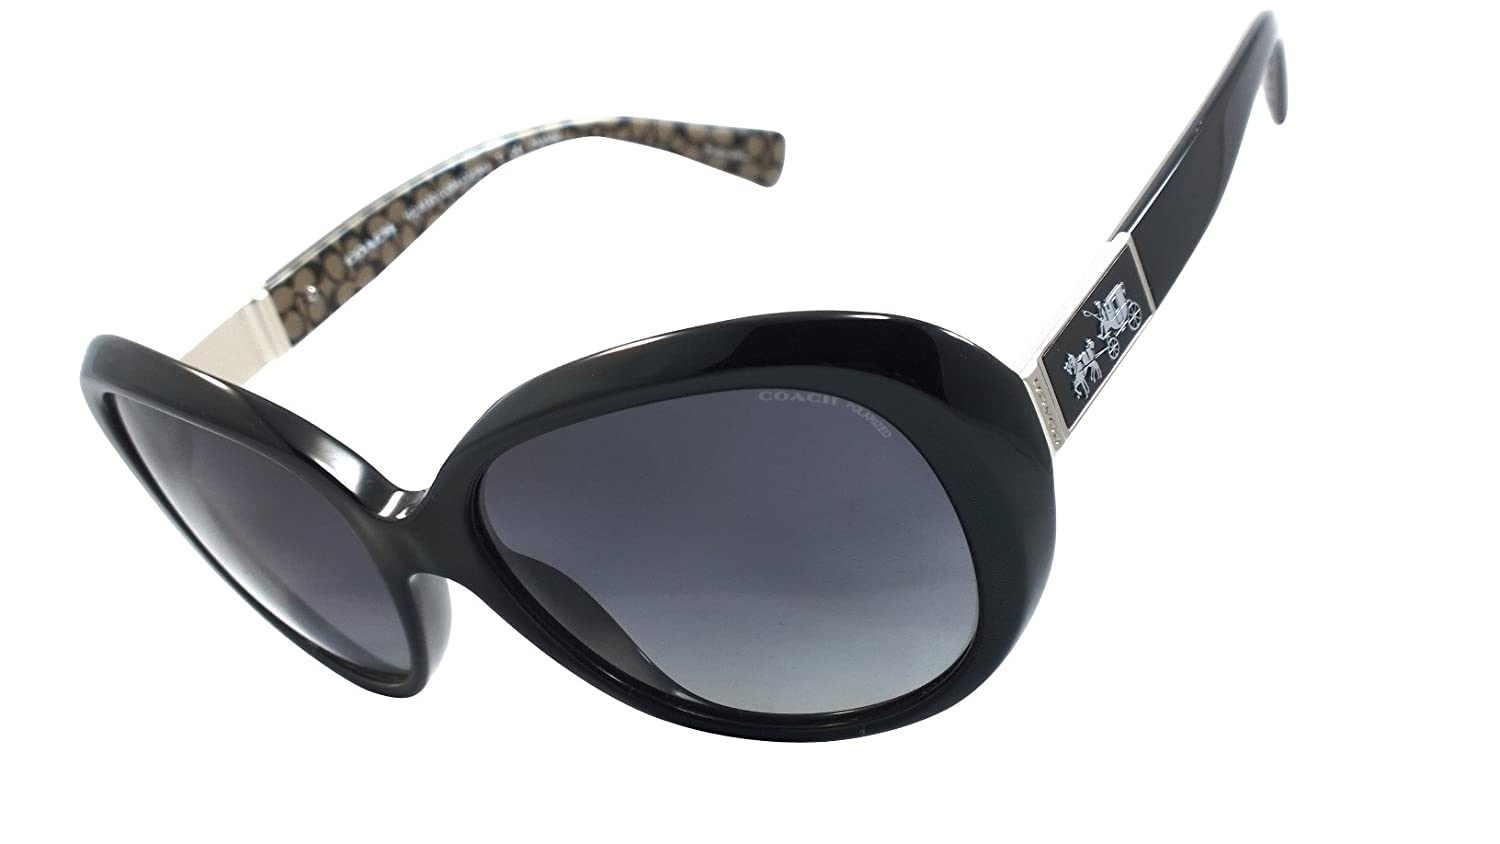 b511596020d1 Amazon.com: Coach Hc8120 (L094 Carter) 100% Authentic Women's Polarized  Sunglasses (Black / Black Military C) 5261t3: Clothing